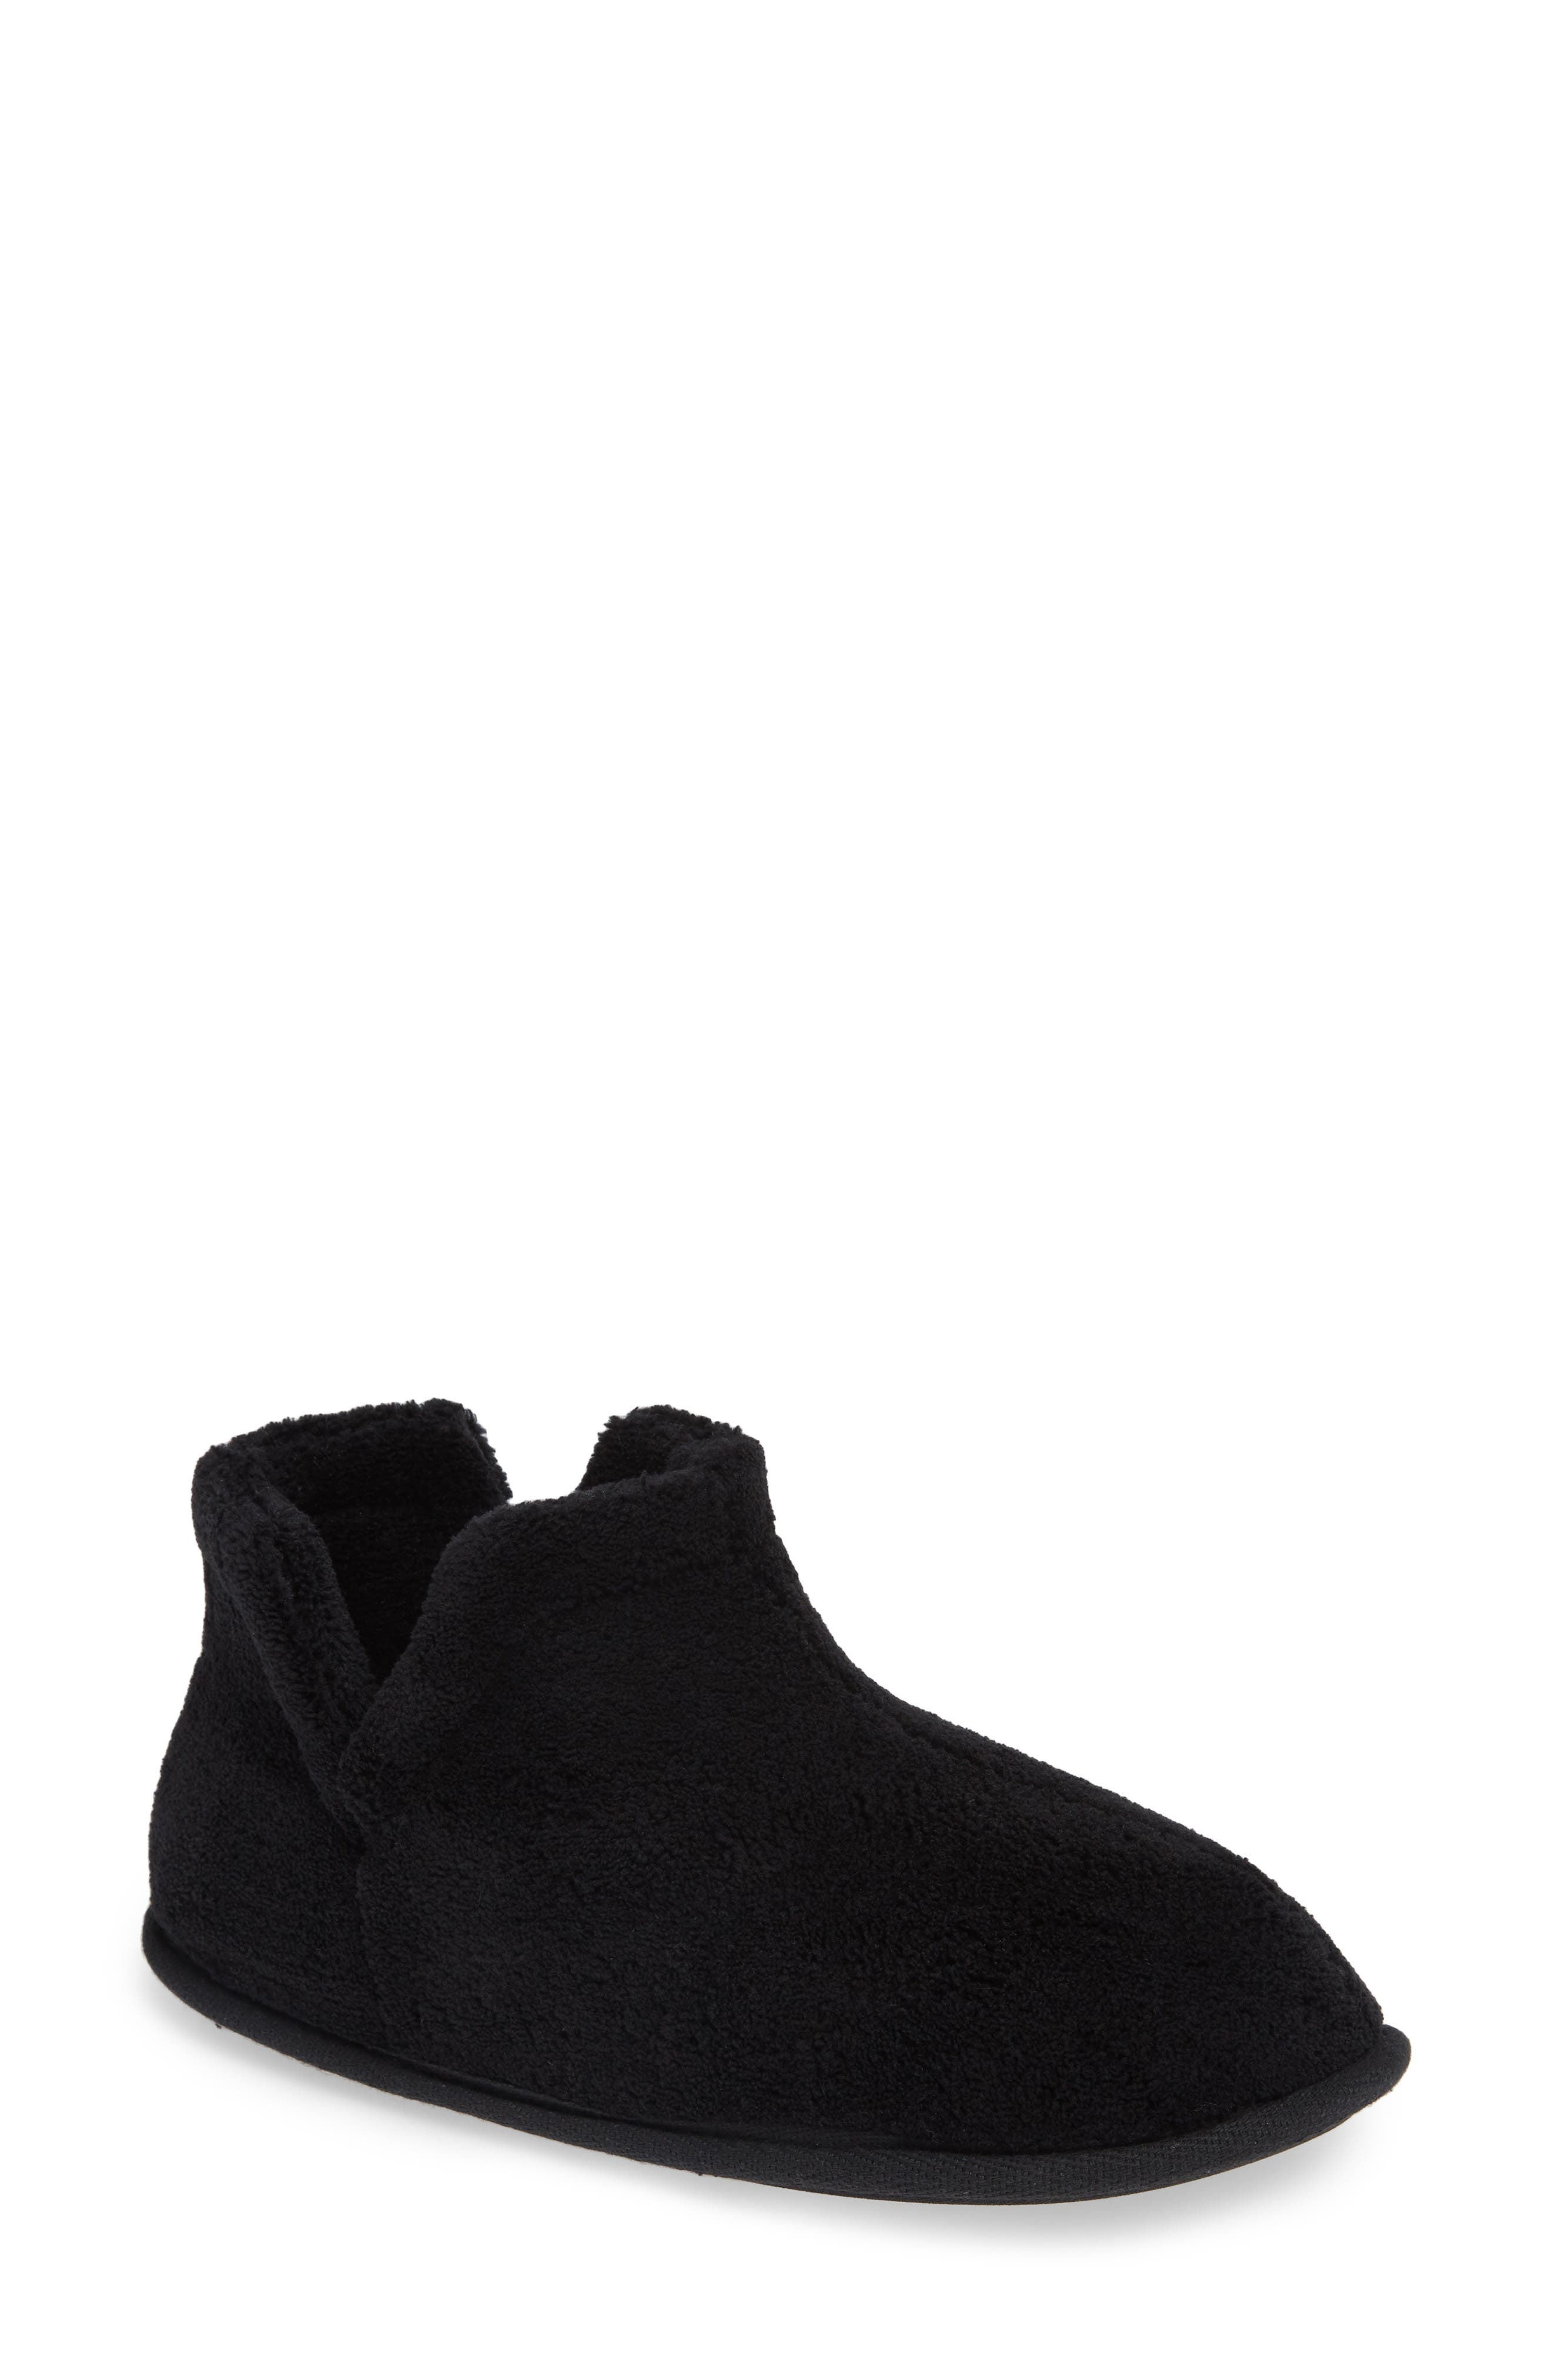 Evalyn Slipper Bootie,                             Main thumbnail 1, color,                             BLACK FABRIC